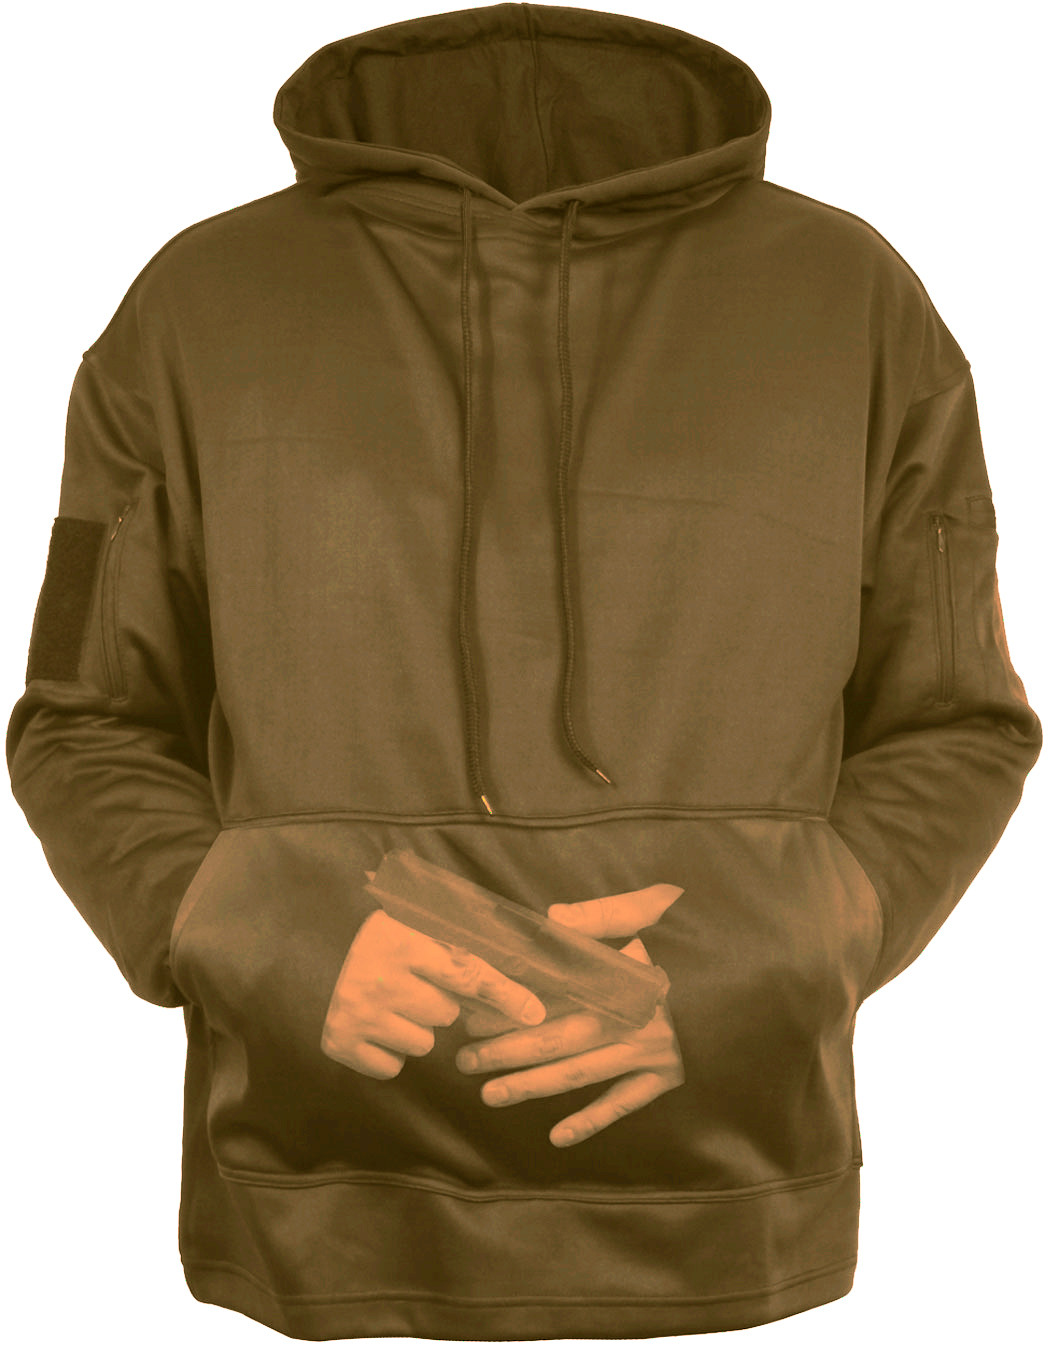 More Views. Coyote Brown Concealed Carry Tactical Hooded Sweatshirt ... 05a9fbcded0